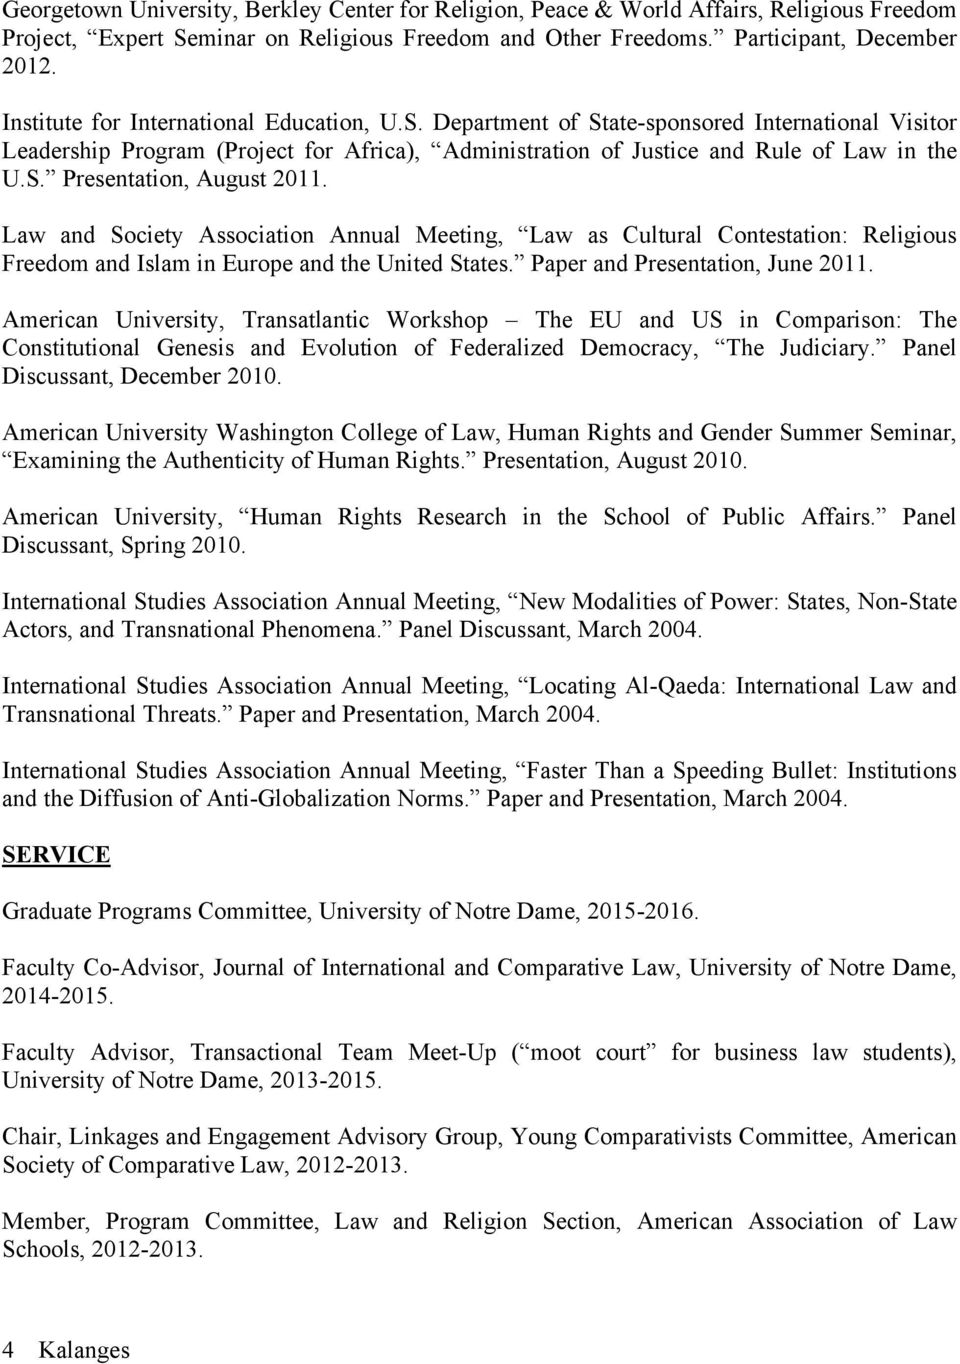 Law and Society Association Annual Meeting, Law as Cultural Contestation: Religious Freedom and Islam in Europe and the United States. Paper and Presentation, June 2011.